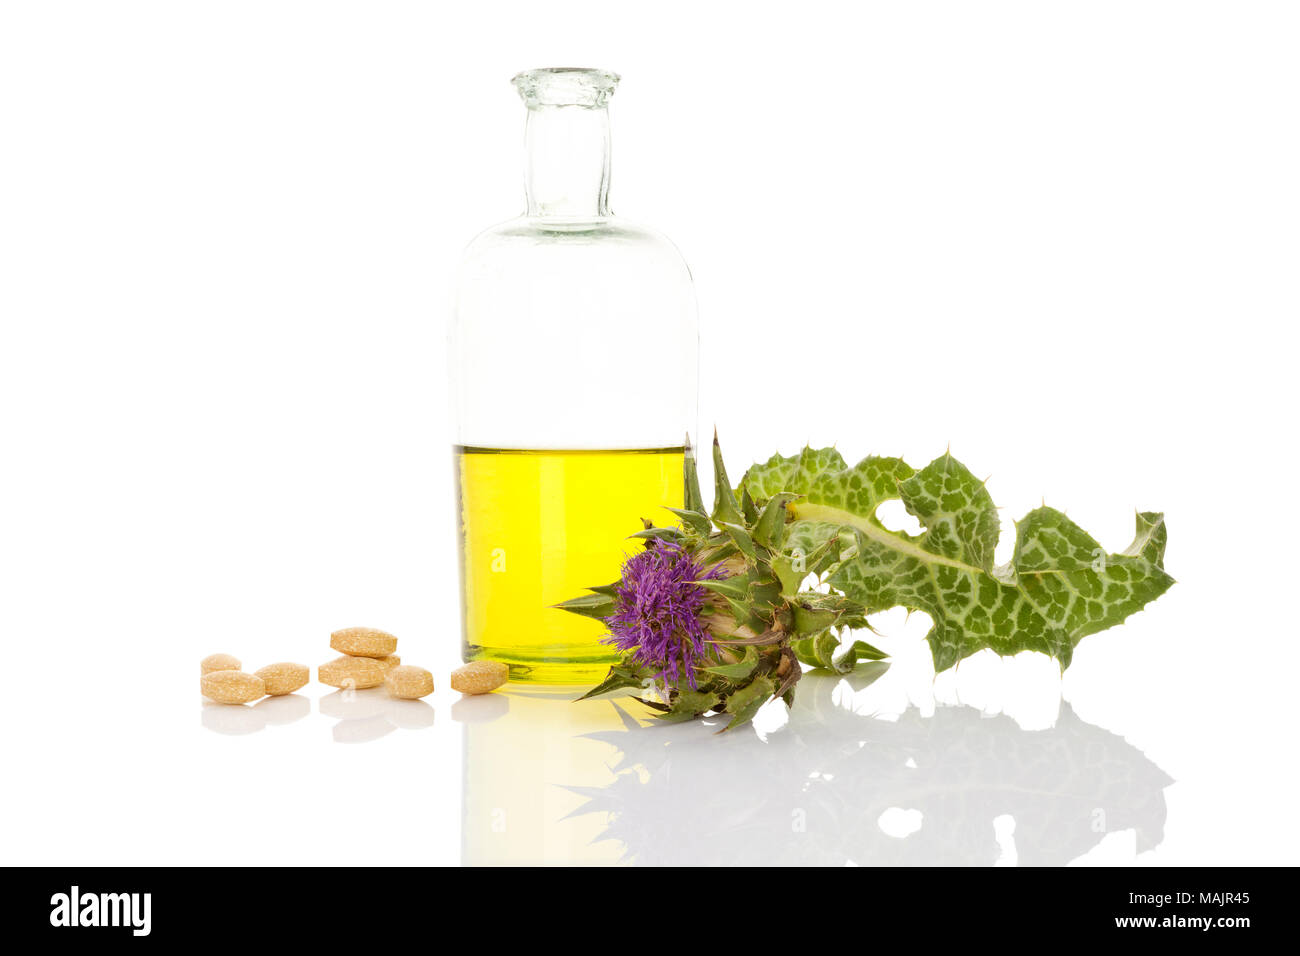 Milk thistle oil extract with milk thistle flower and supplement pills isolated on white background. - Stock Image